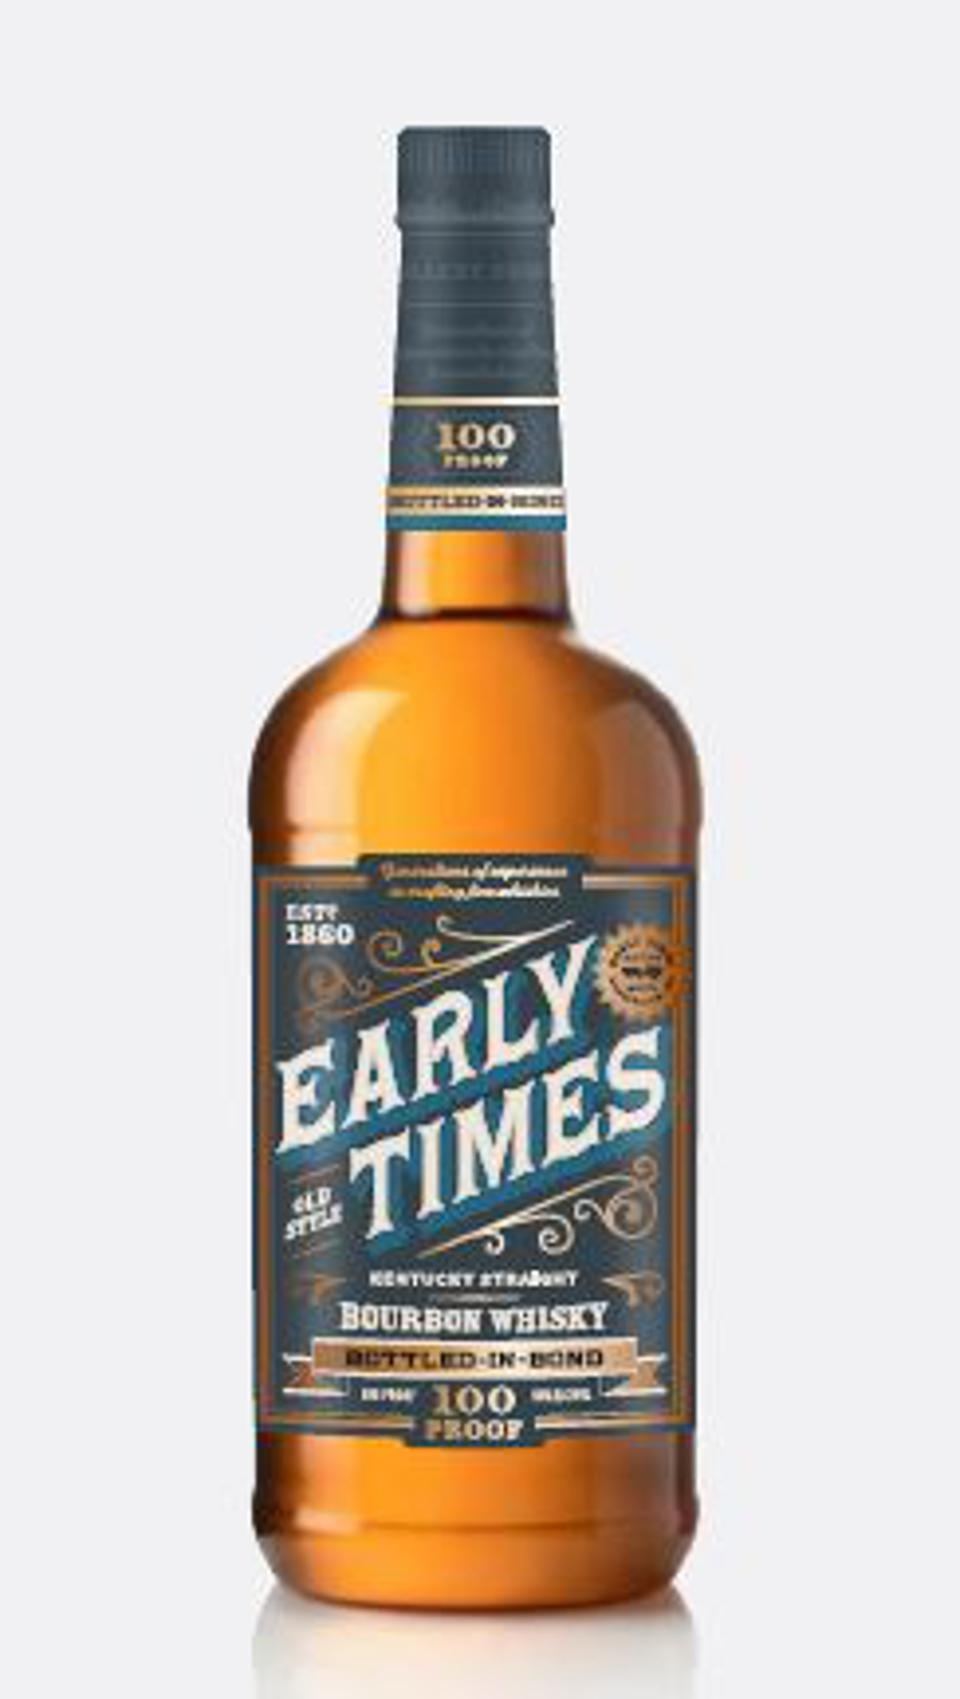 Brown-Forman owns Early Times.